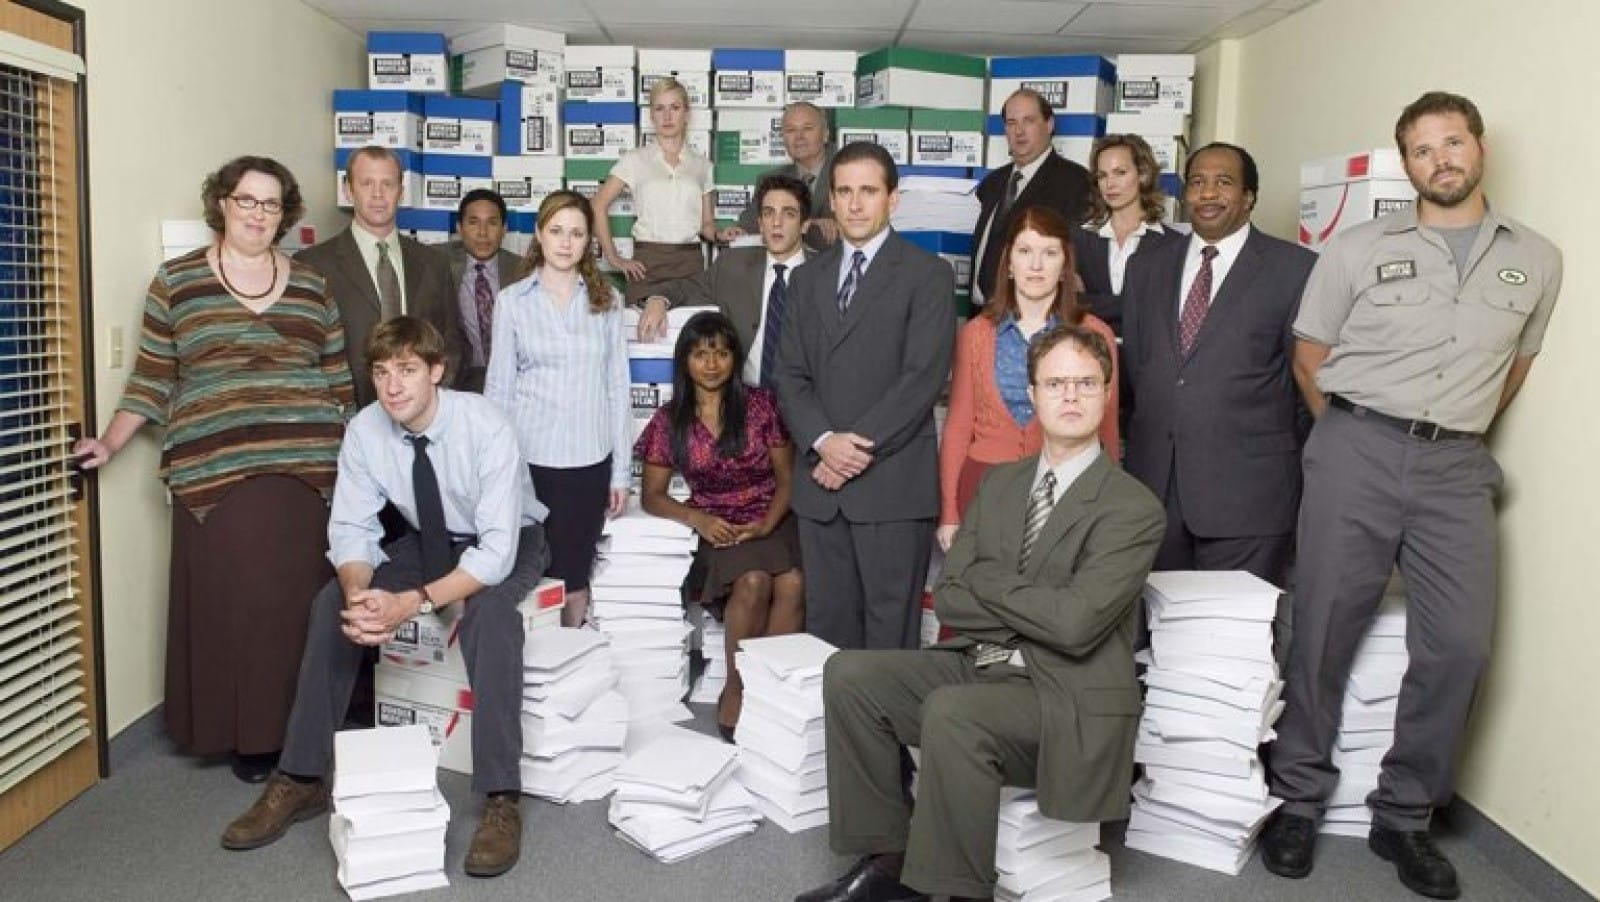 the cast of the tv show, the office